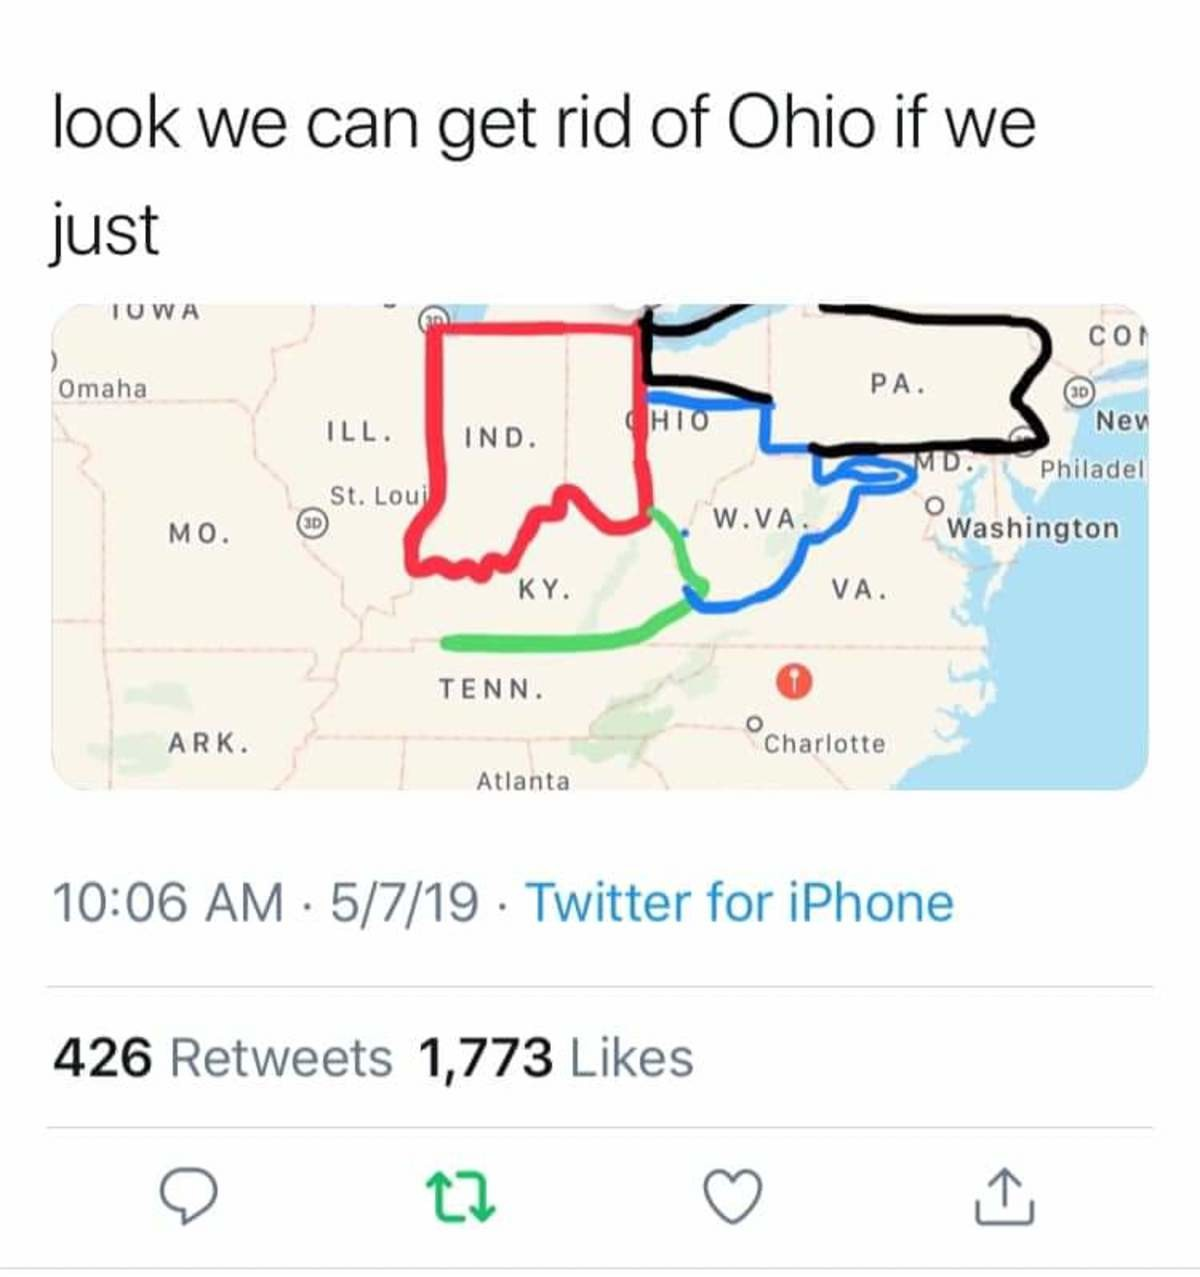 hilarious testy upbeat Penguin. .. >>#2, I hope your funny joke on the internet was worth it. Soon Ohio will get the fear and respect it deserves.